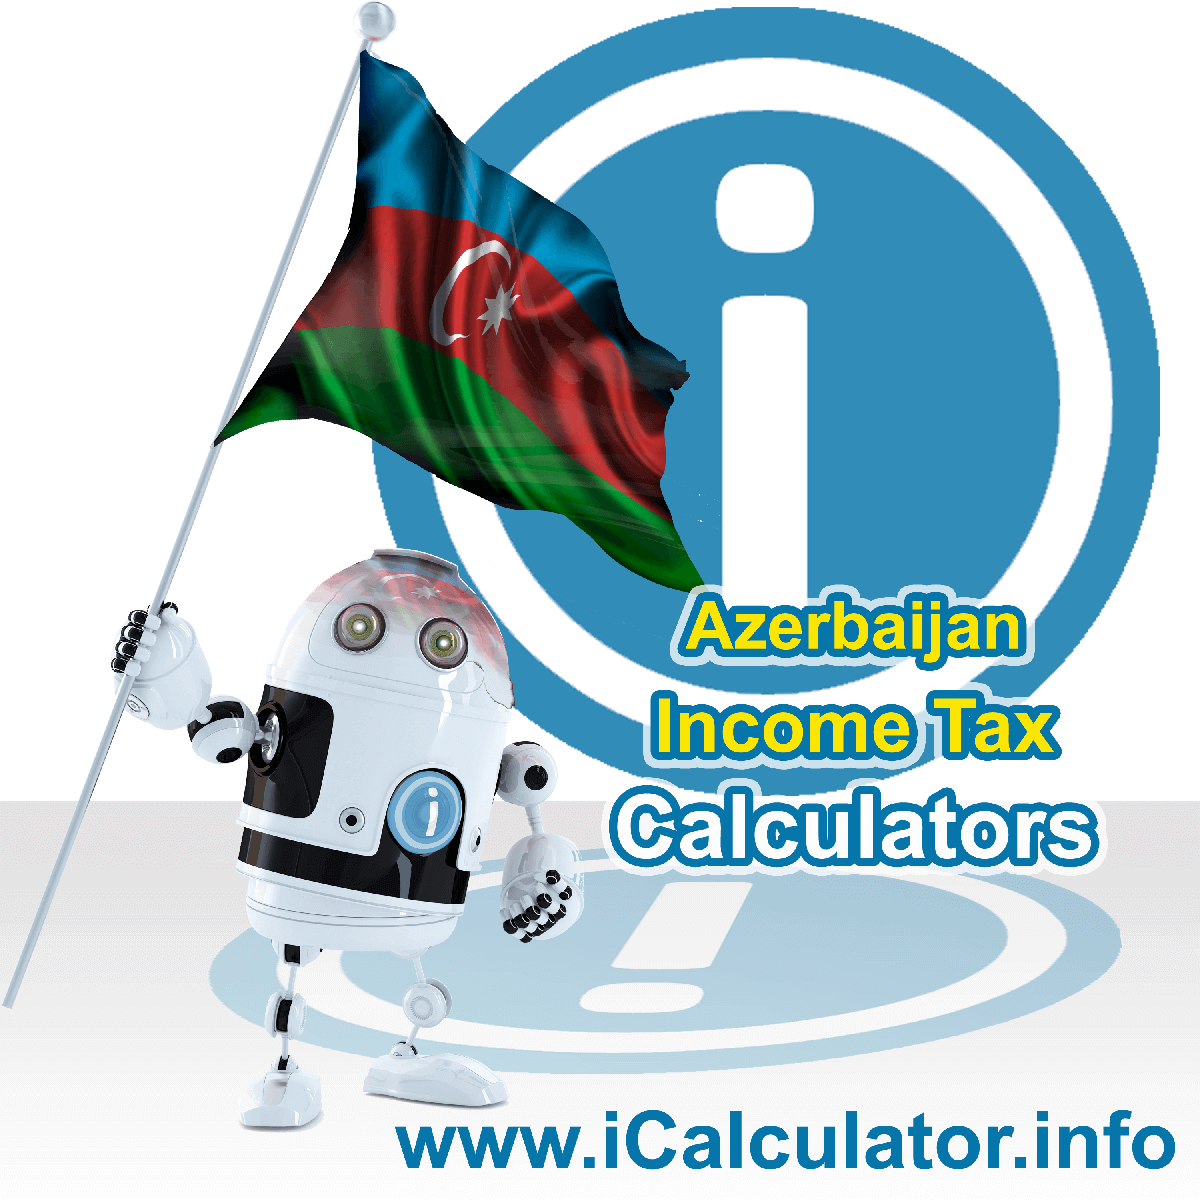 Azerbaijan Income Tax Calculator. This image shows a new employer in Azerbaijan calculating the annual payroll costs based on multiple payroll payments in one year in Azerbaijan using the Azerbaijan income tax calculator to understand their payroll costs in Azerbaijan in 2021